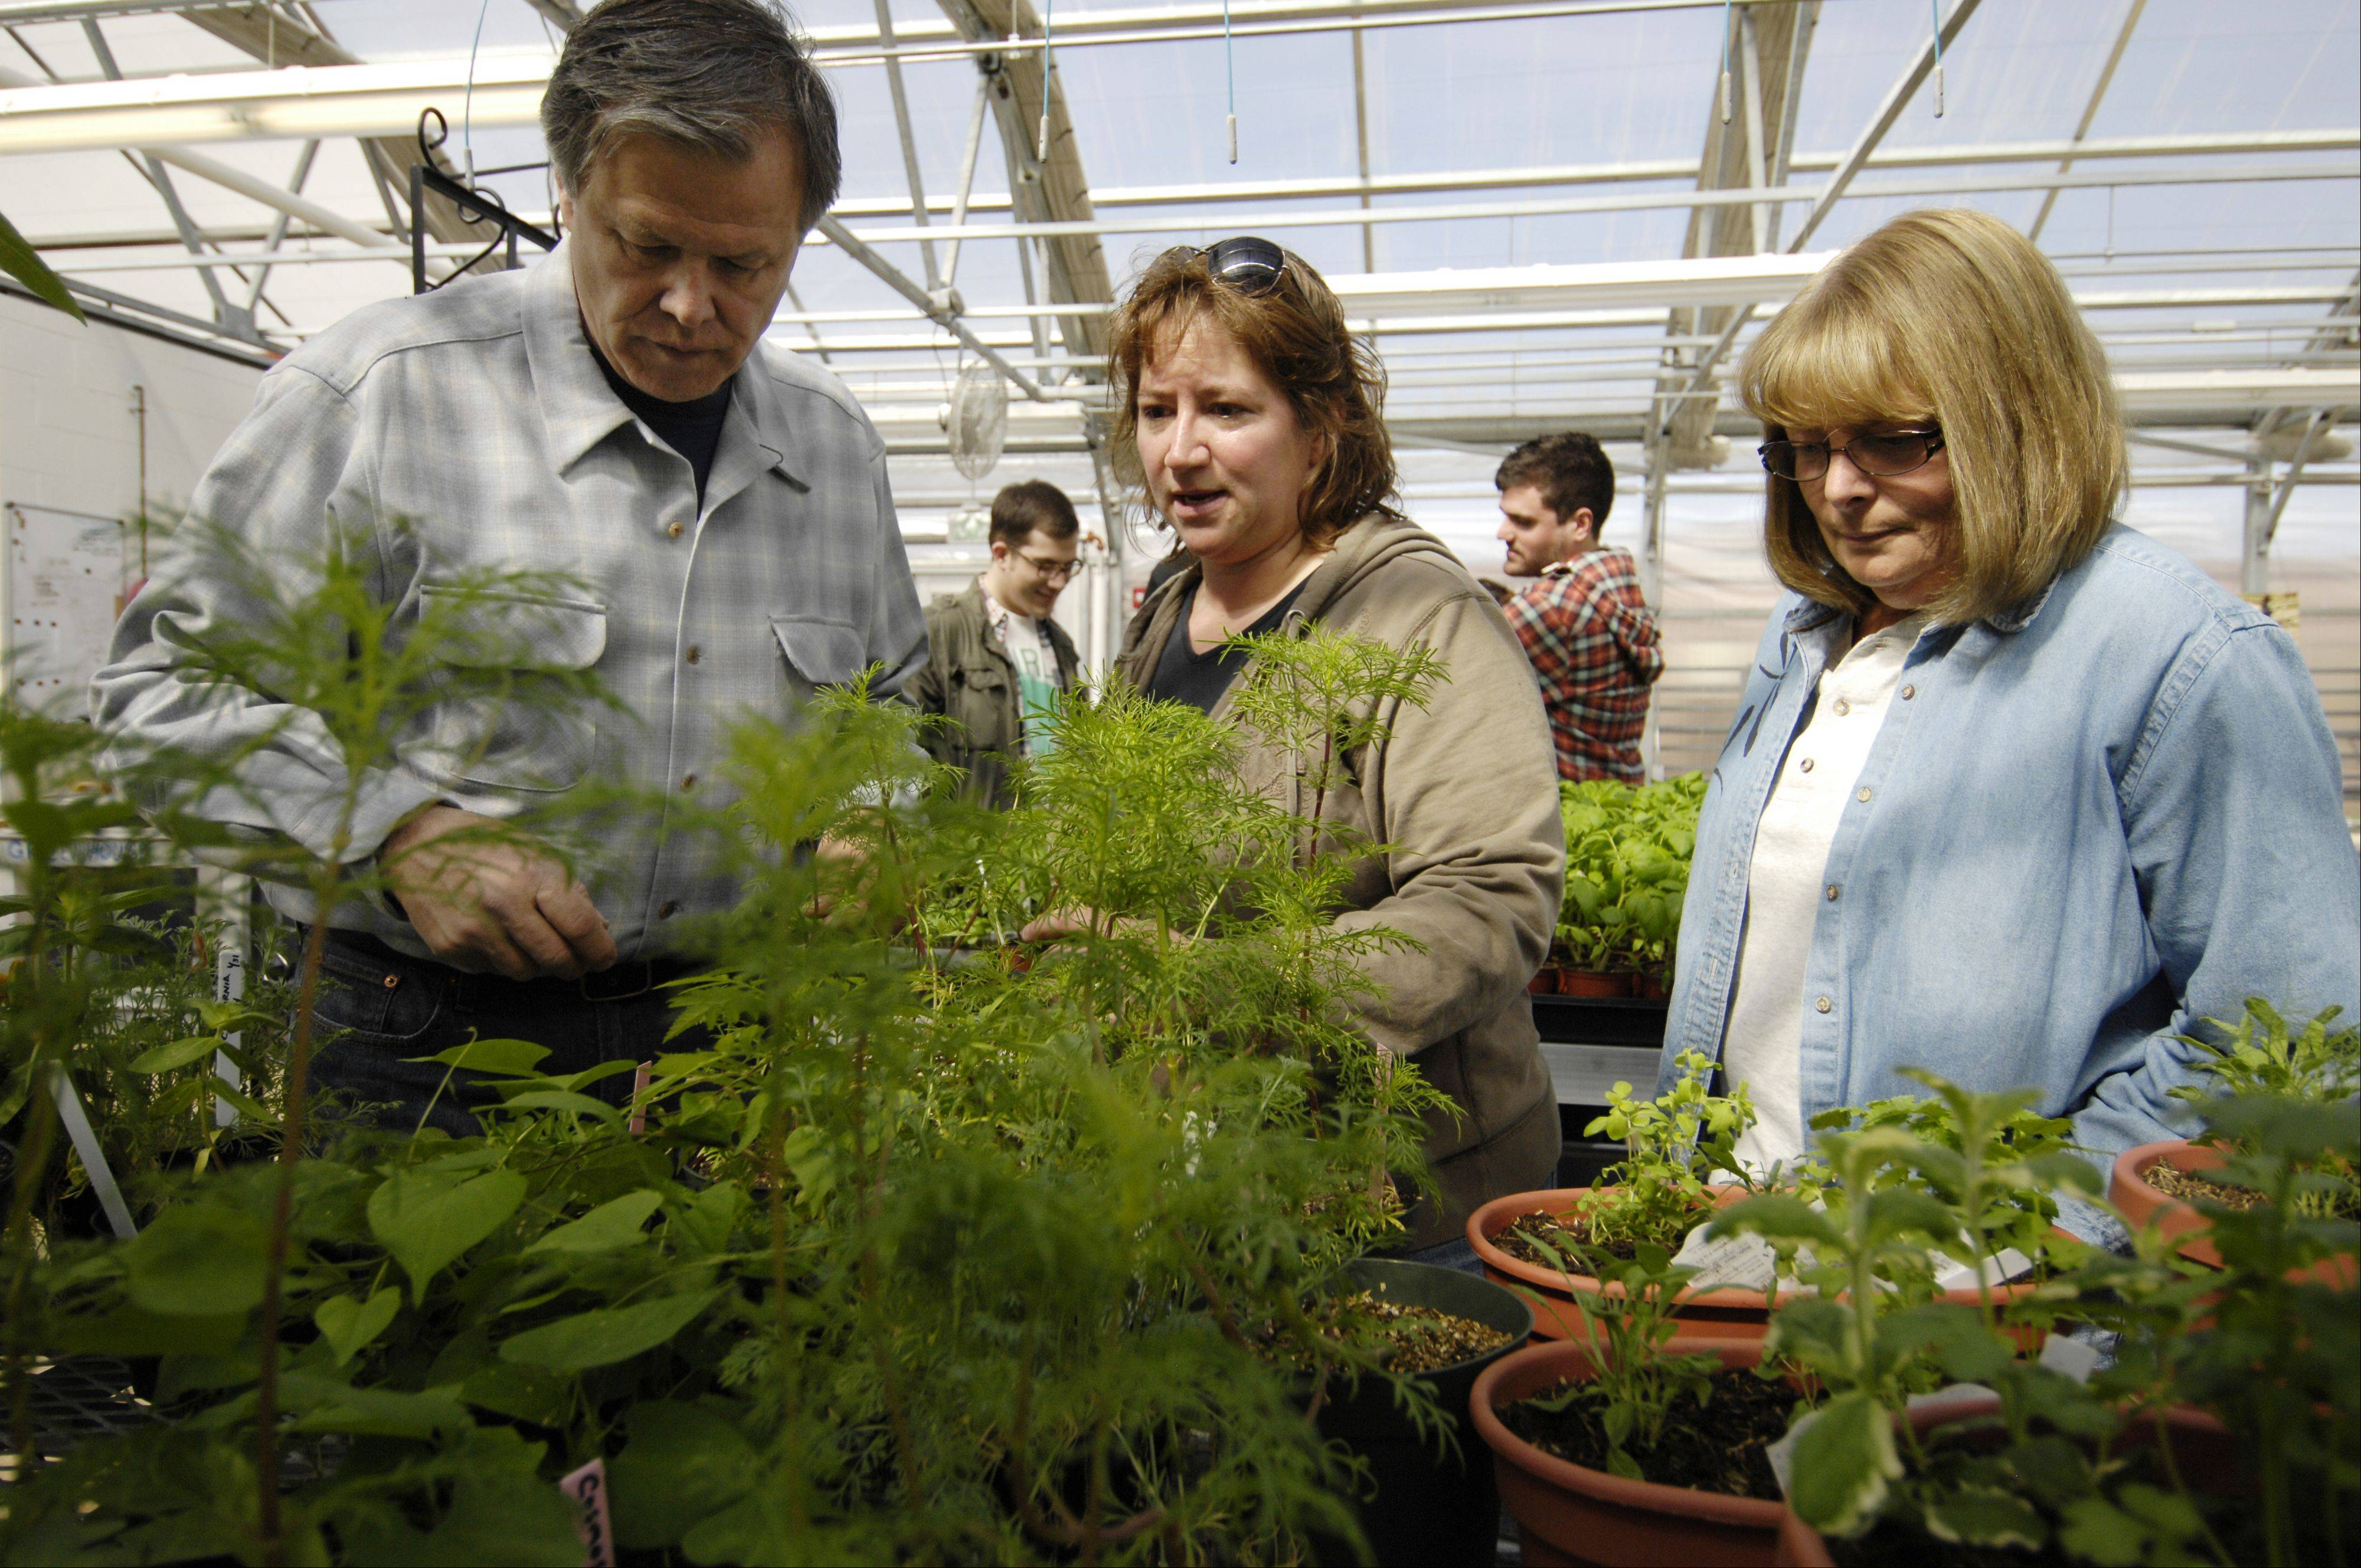 Amy Hull, center, College of DuPage greenhouse supervisor and adjunct factuality member works with student Bruce Adamec of Hinsdale and volunteer Carol Lachance of Lombard.